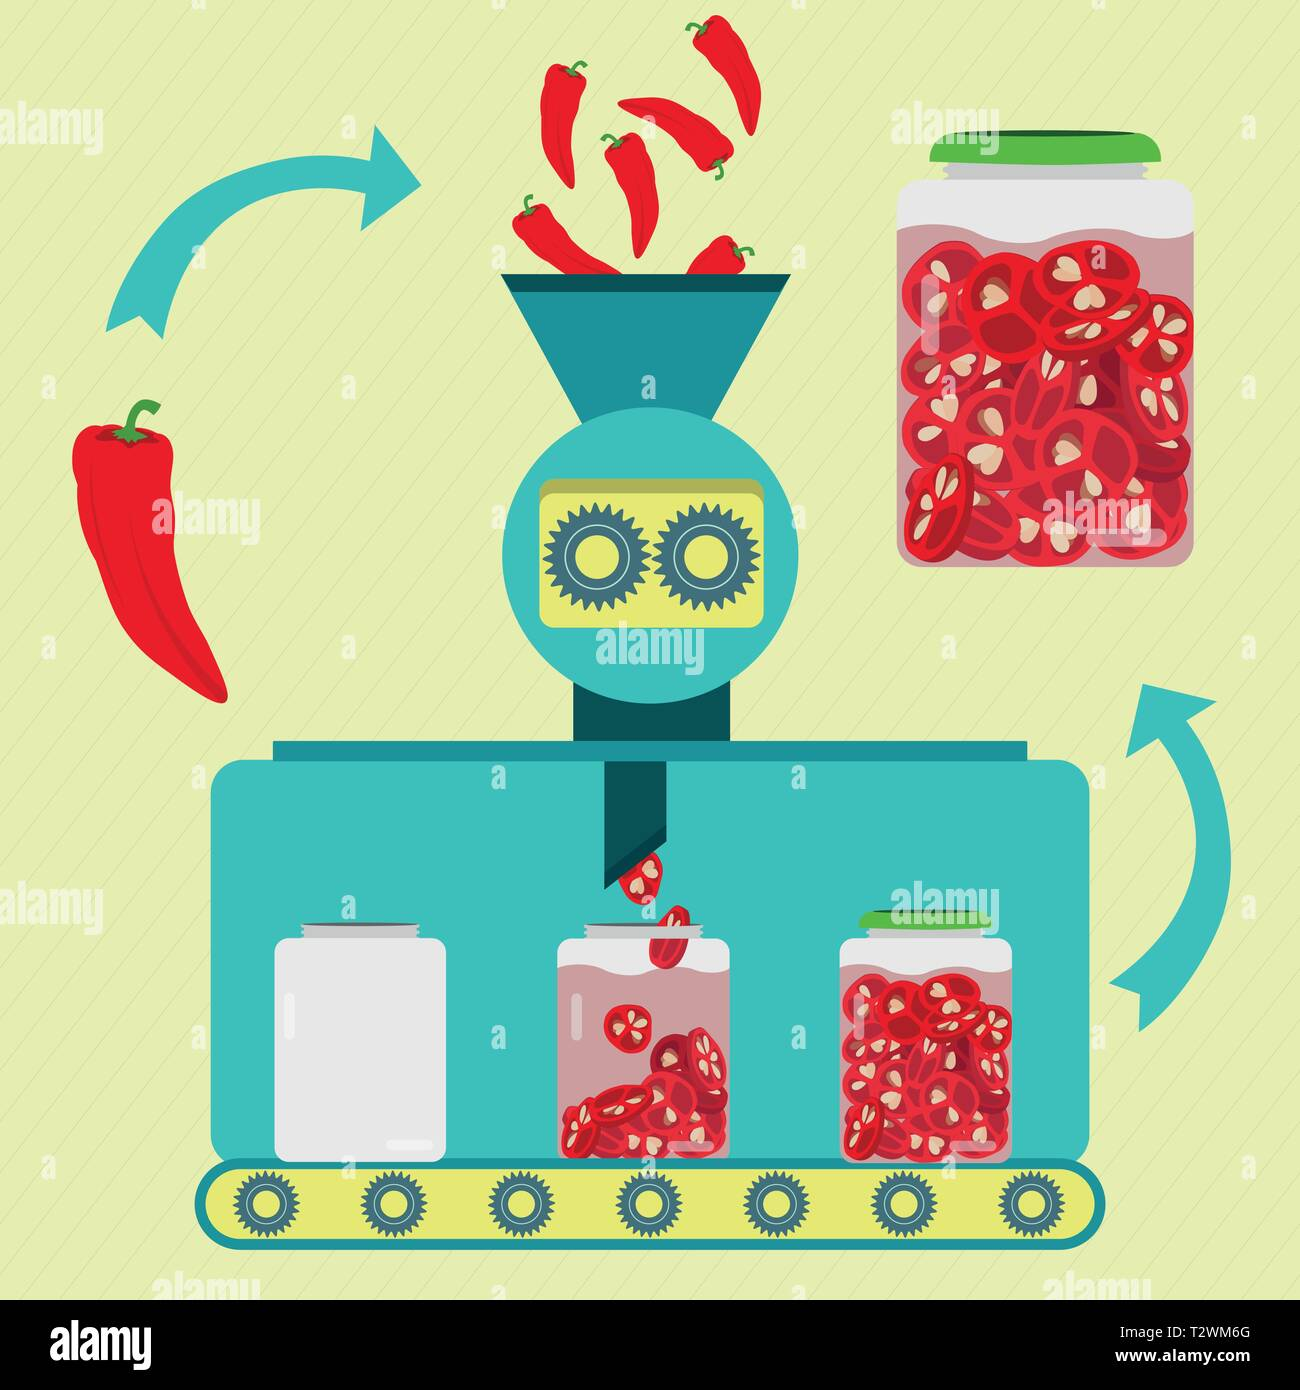 Pickles series production. Fresh red chilli peppers being processed and sliced. Bottled pickled sliced chilli peppers. - Stock Vector